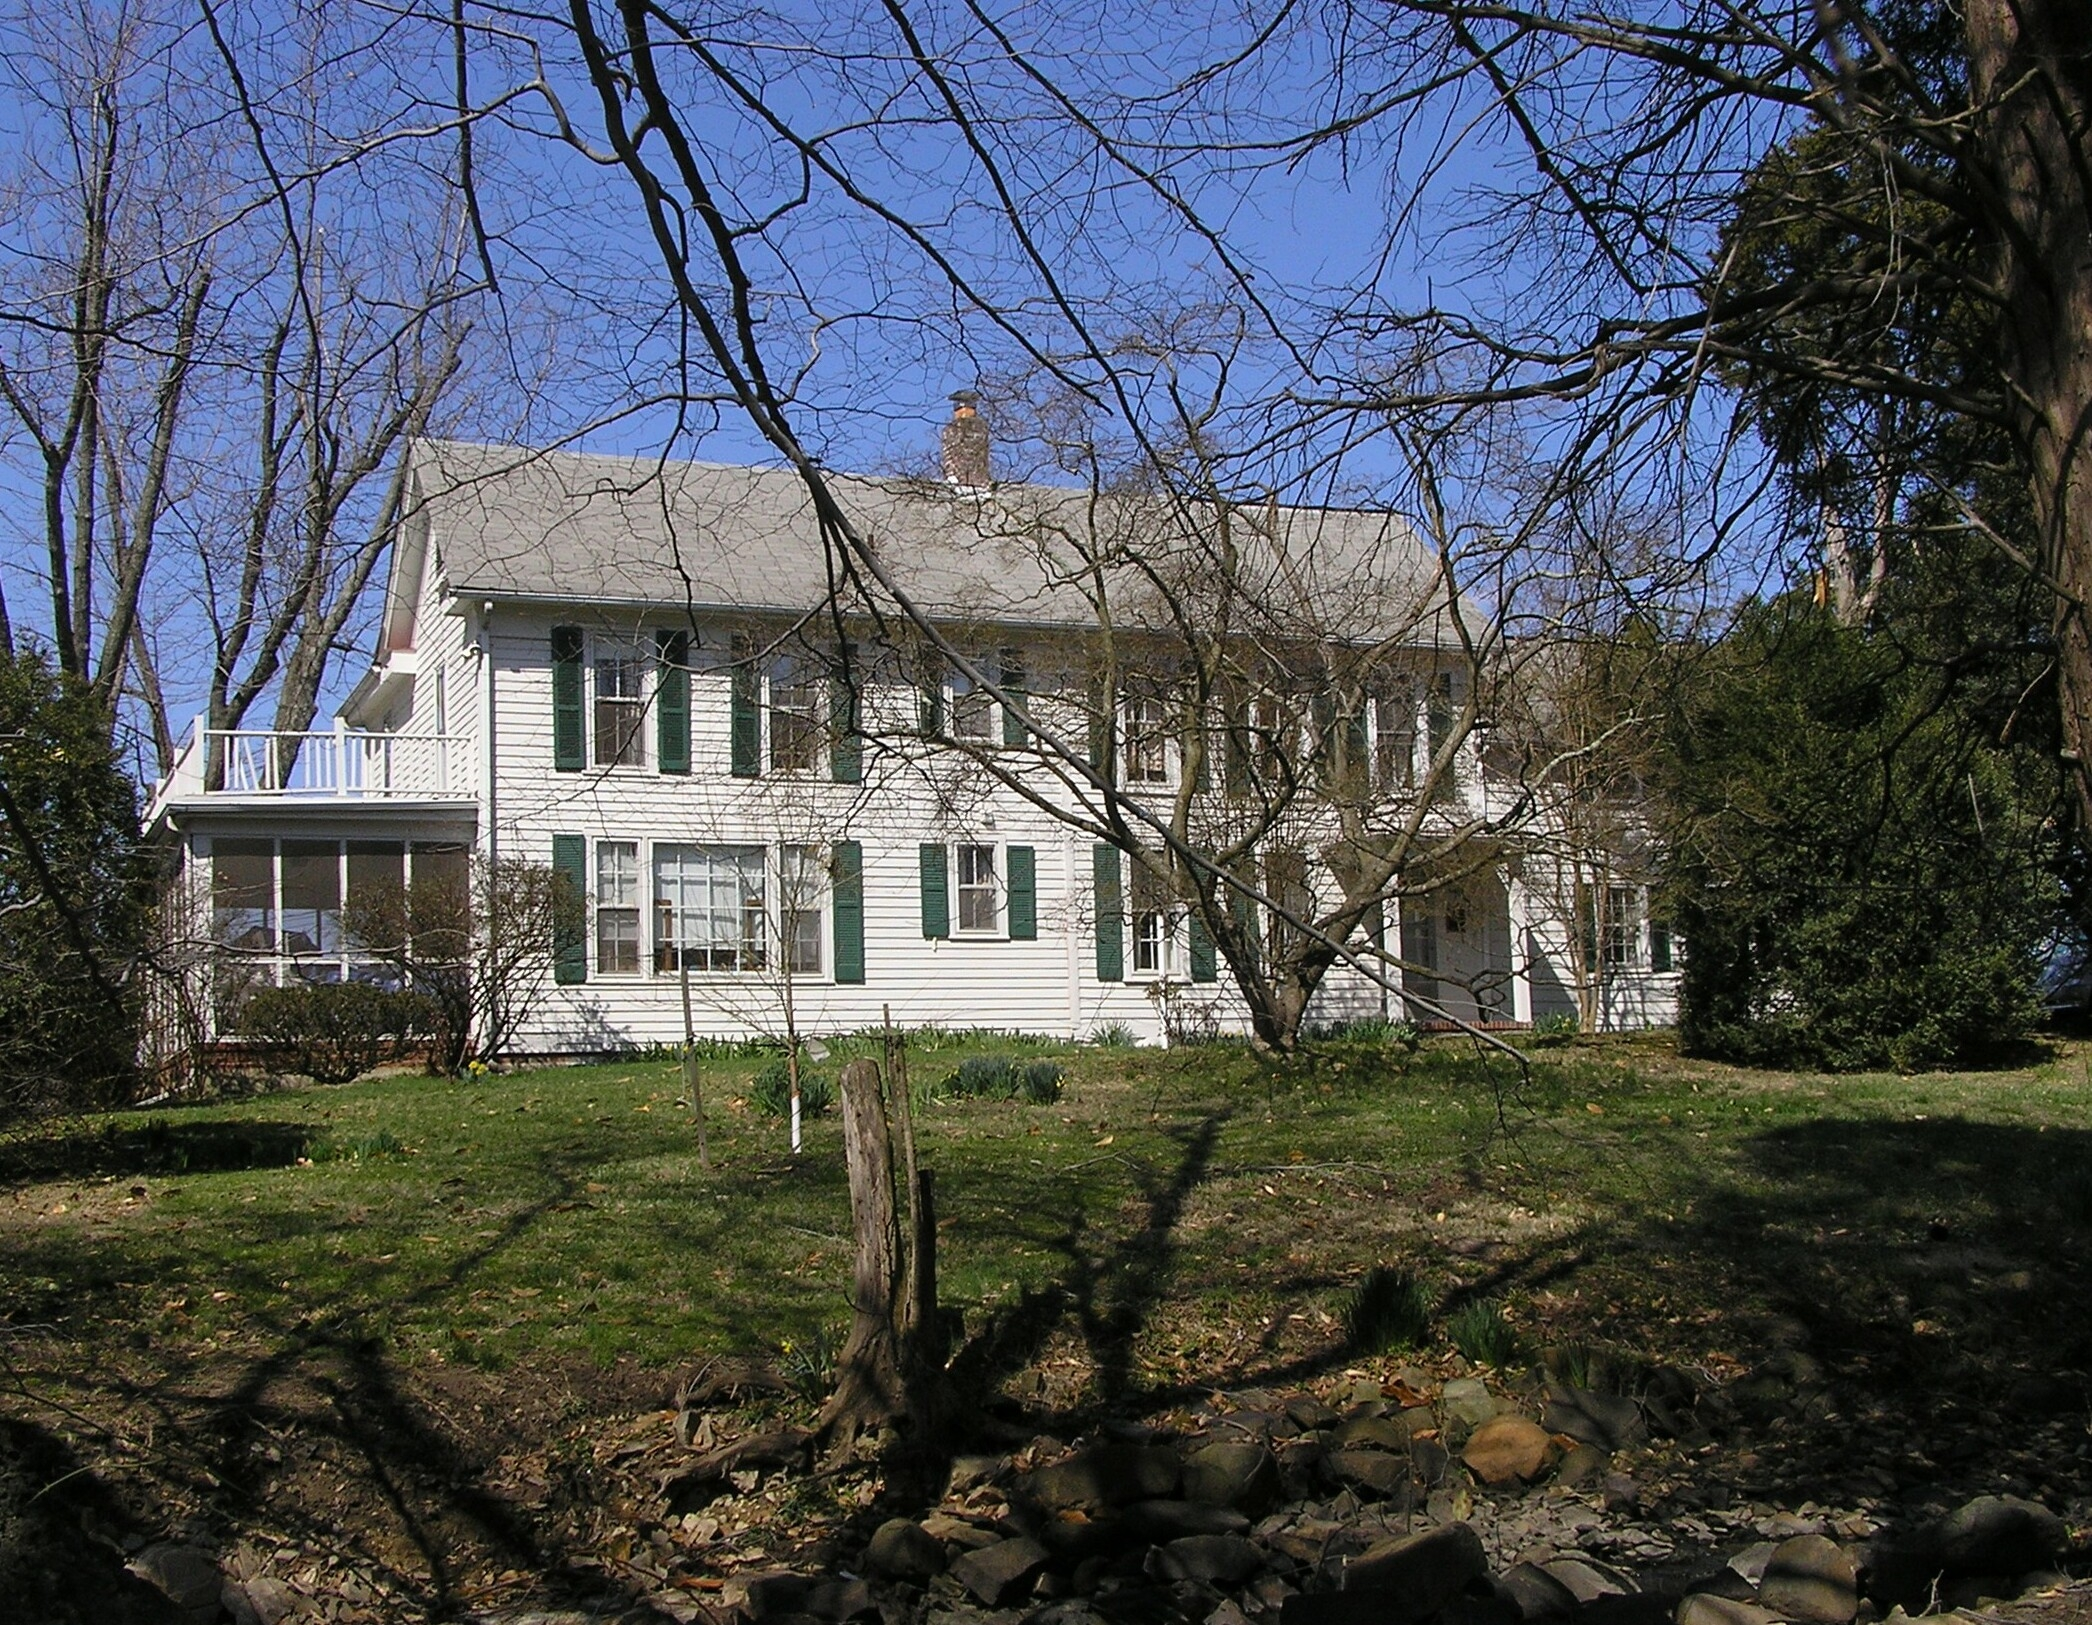 Merrybrook in March 2010